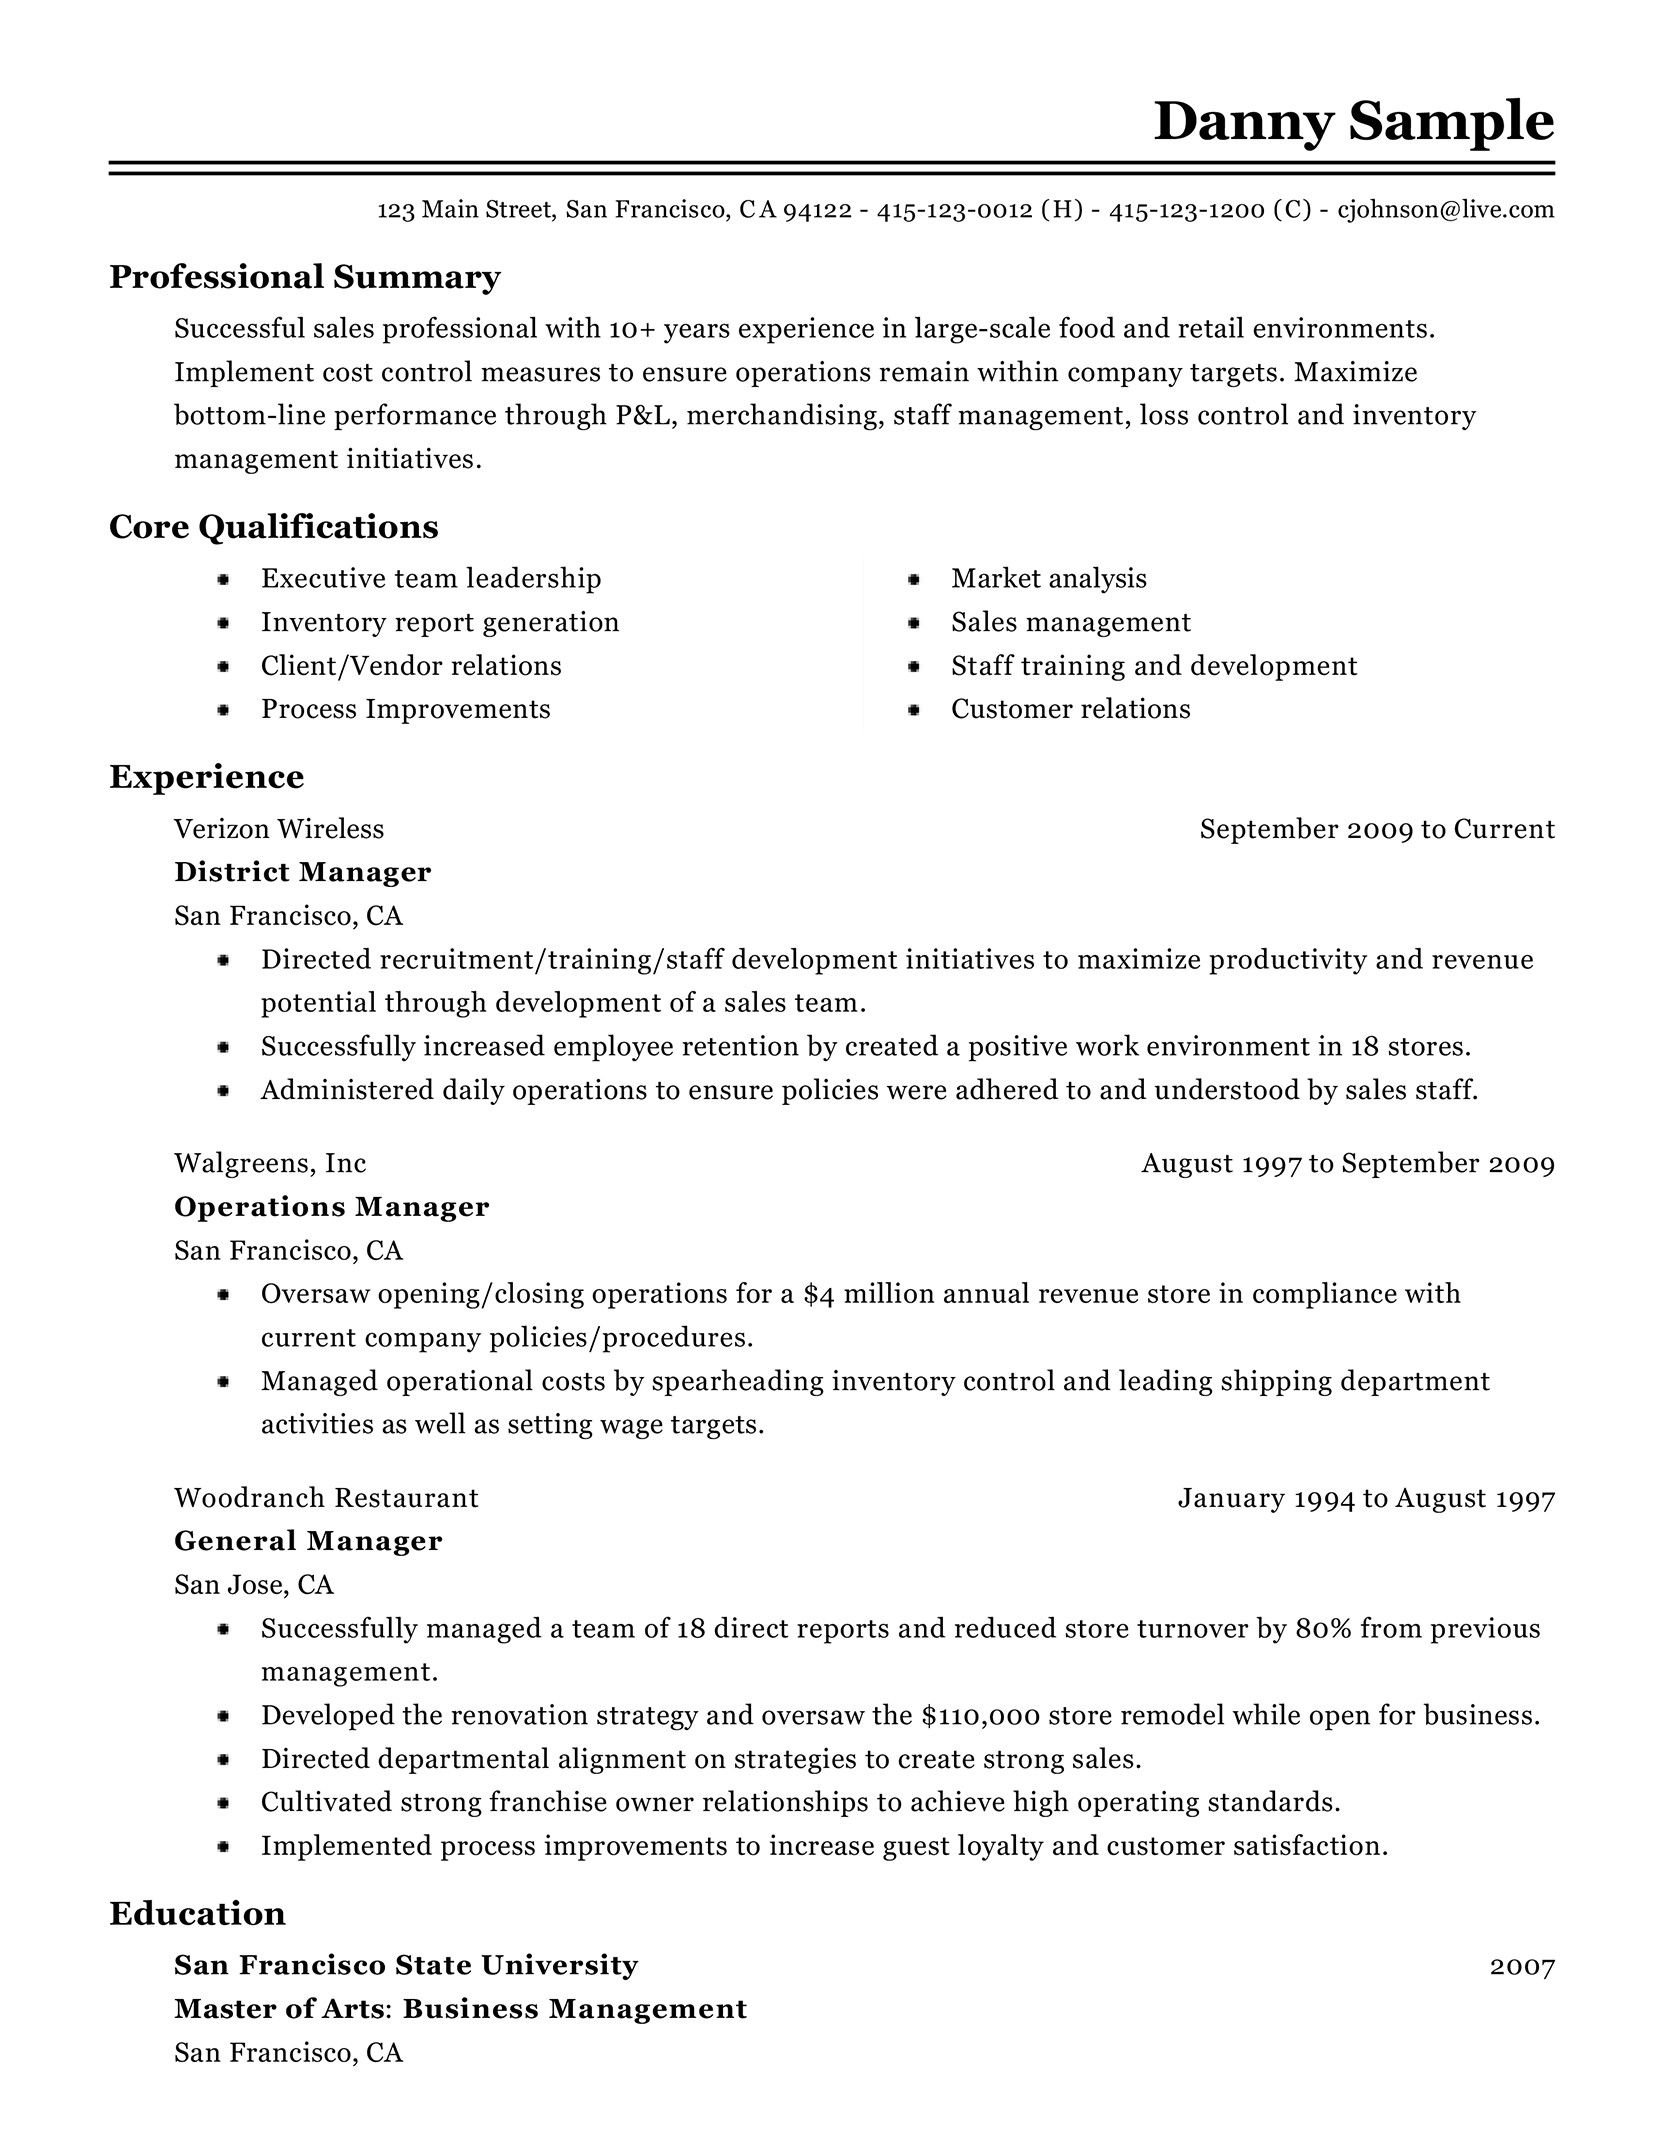 Resume Now Cost 25 Luxury Resume Now Review Tonyworld Net Resume